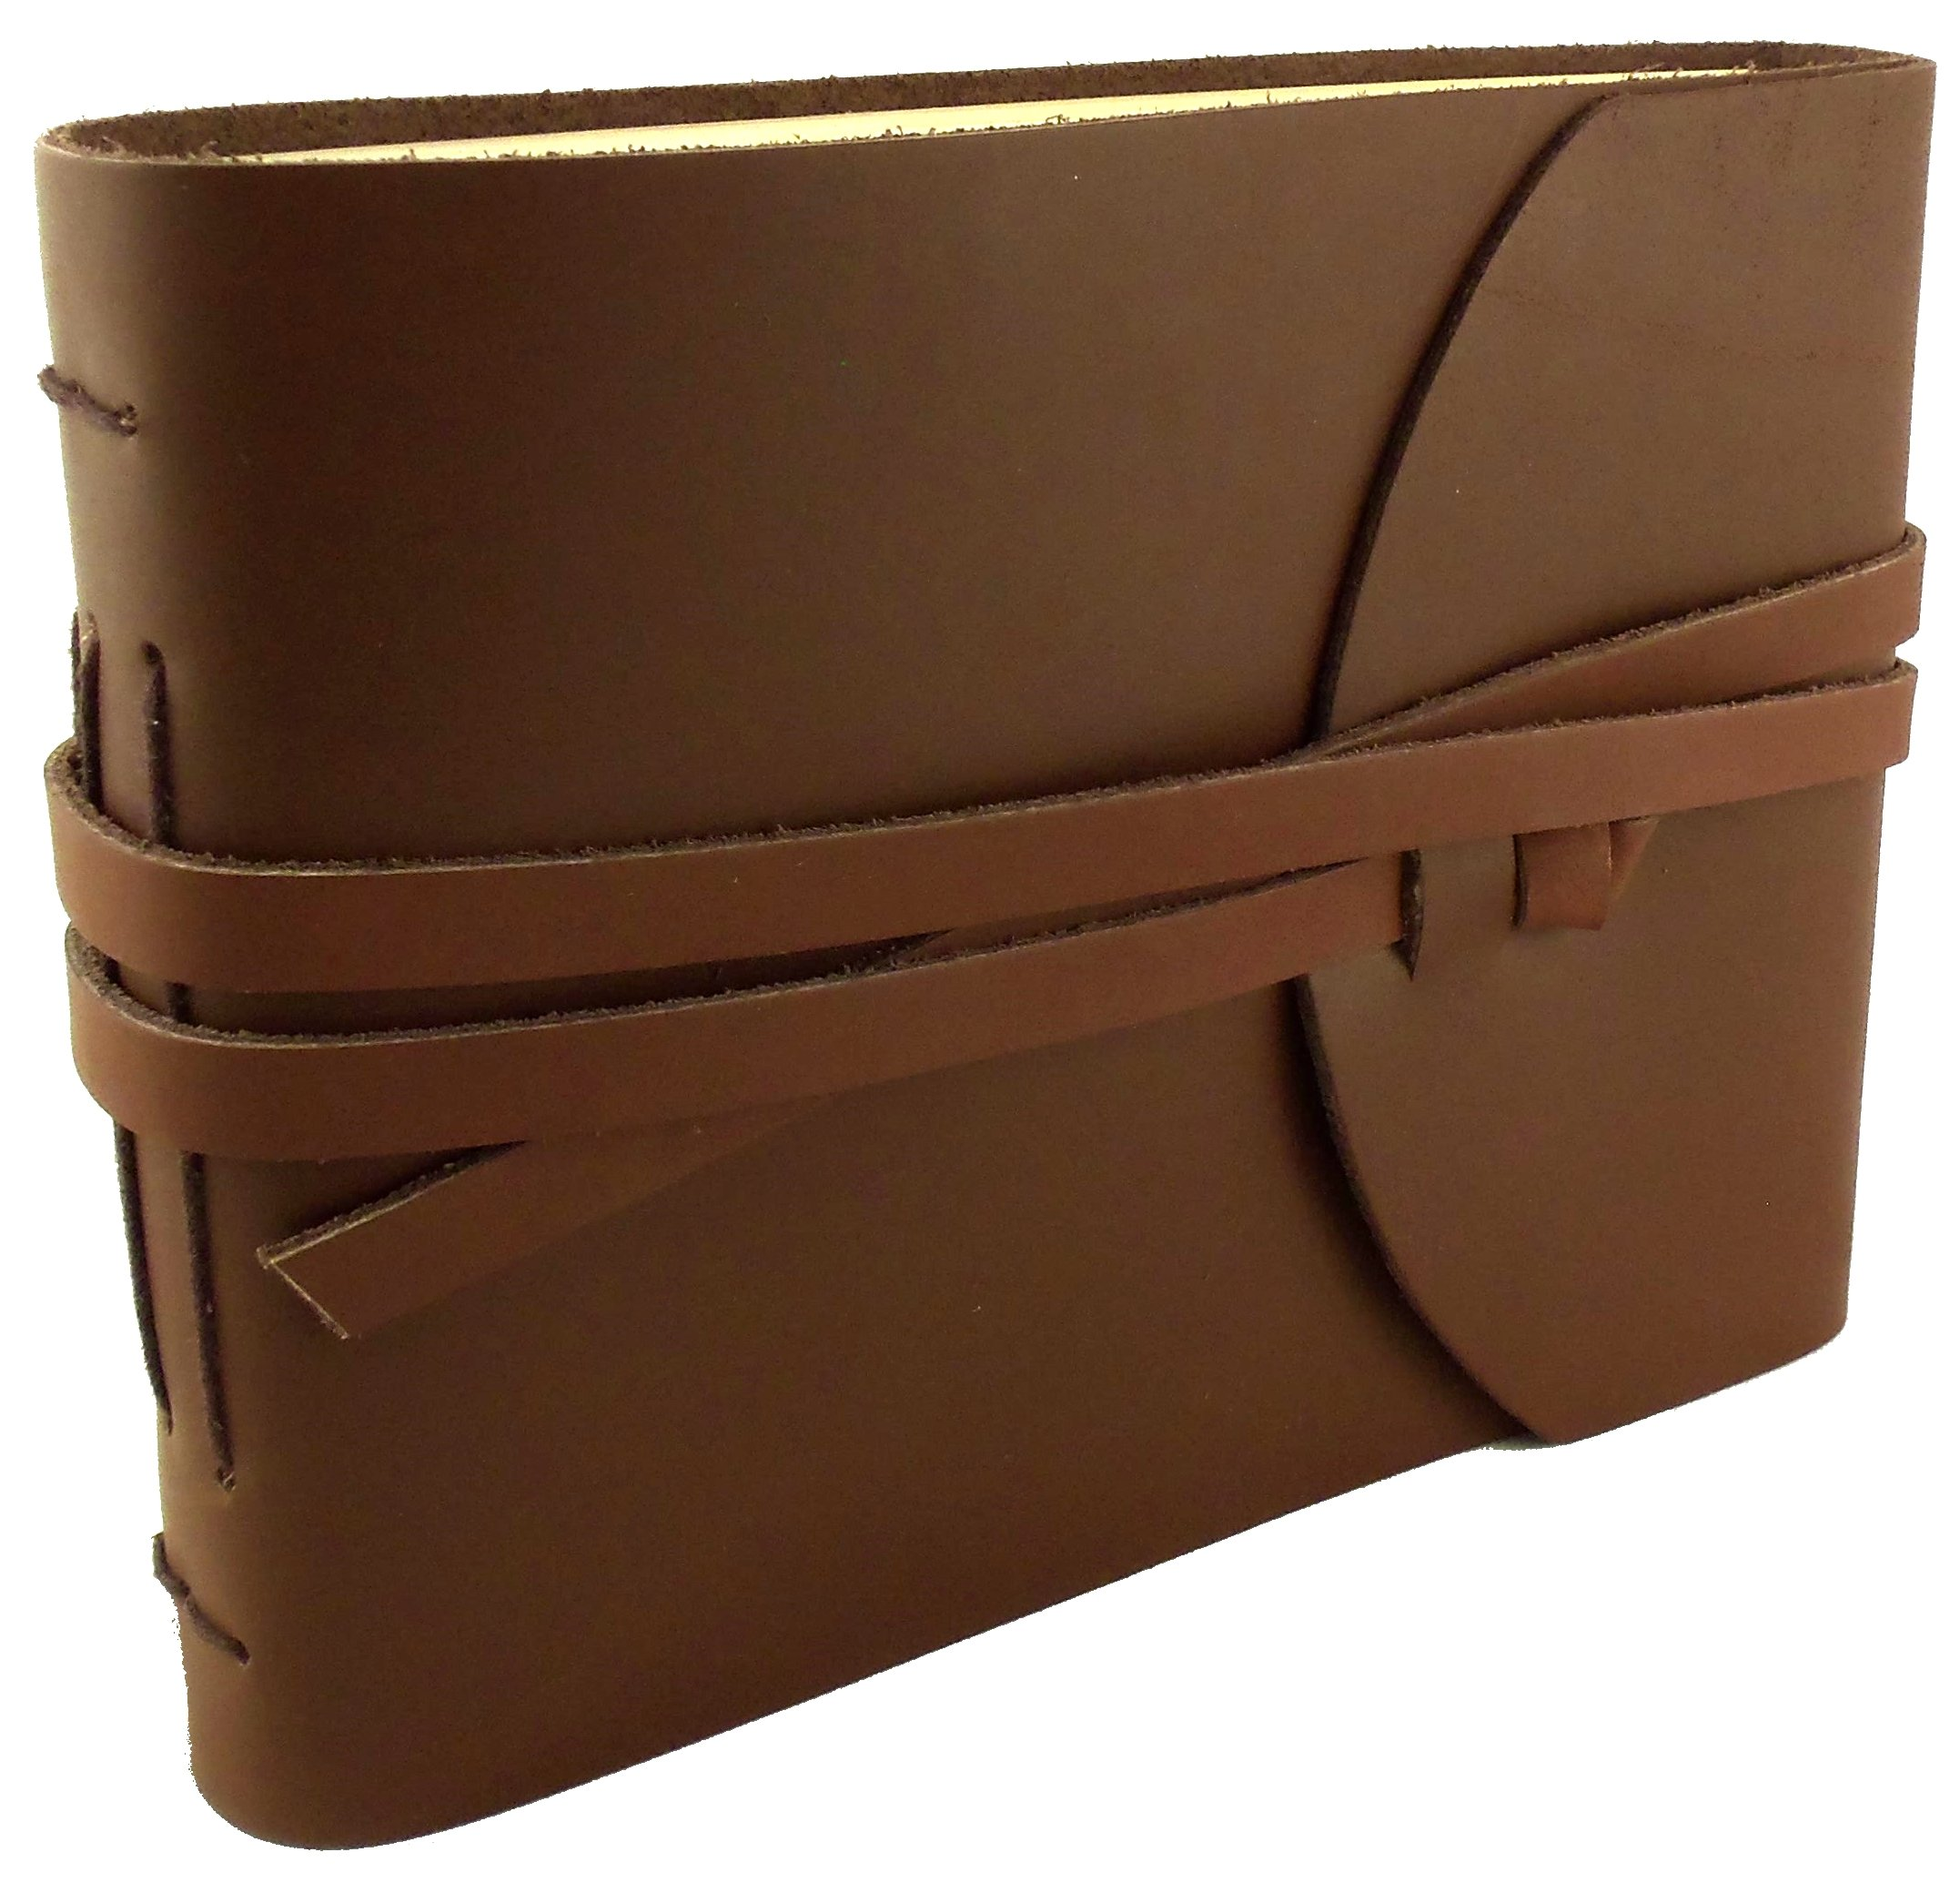 Rustic Genuine Leather Photo Album with Gift Box - Scrapbook Style Pages - Holds 100 4x6 or 5x7 Photos - Photo Book 6x8''